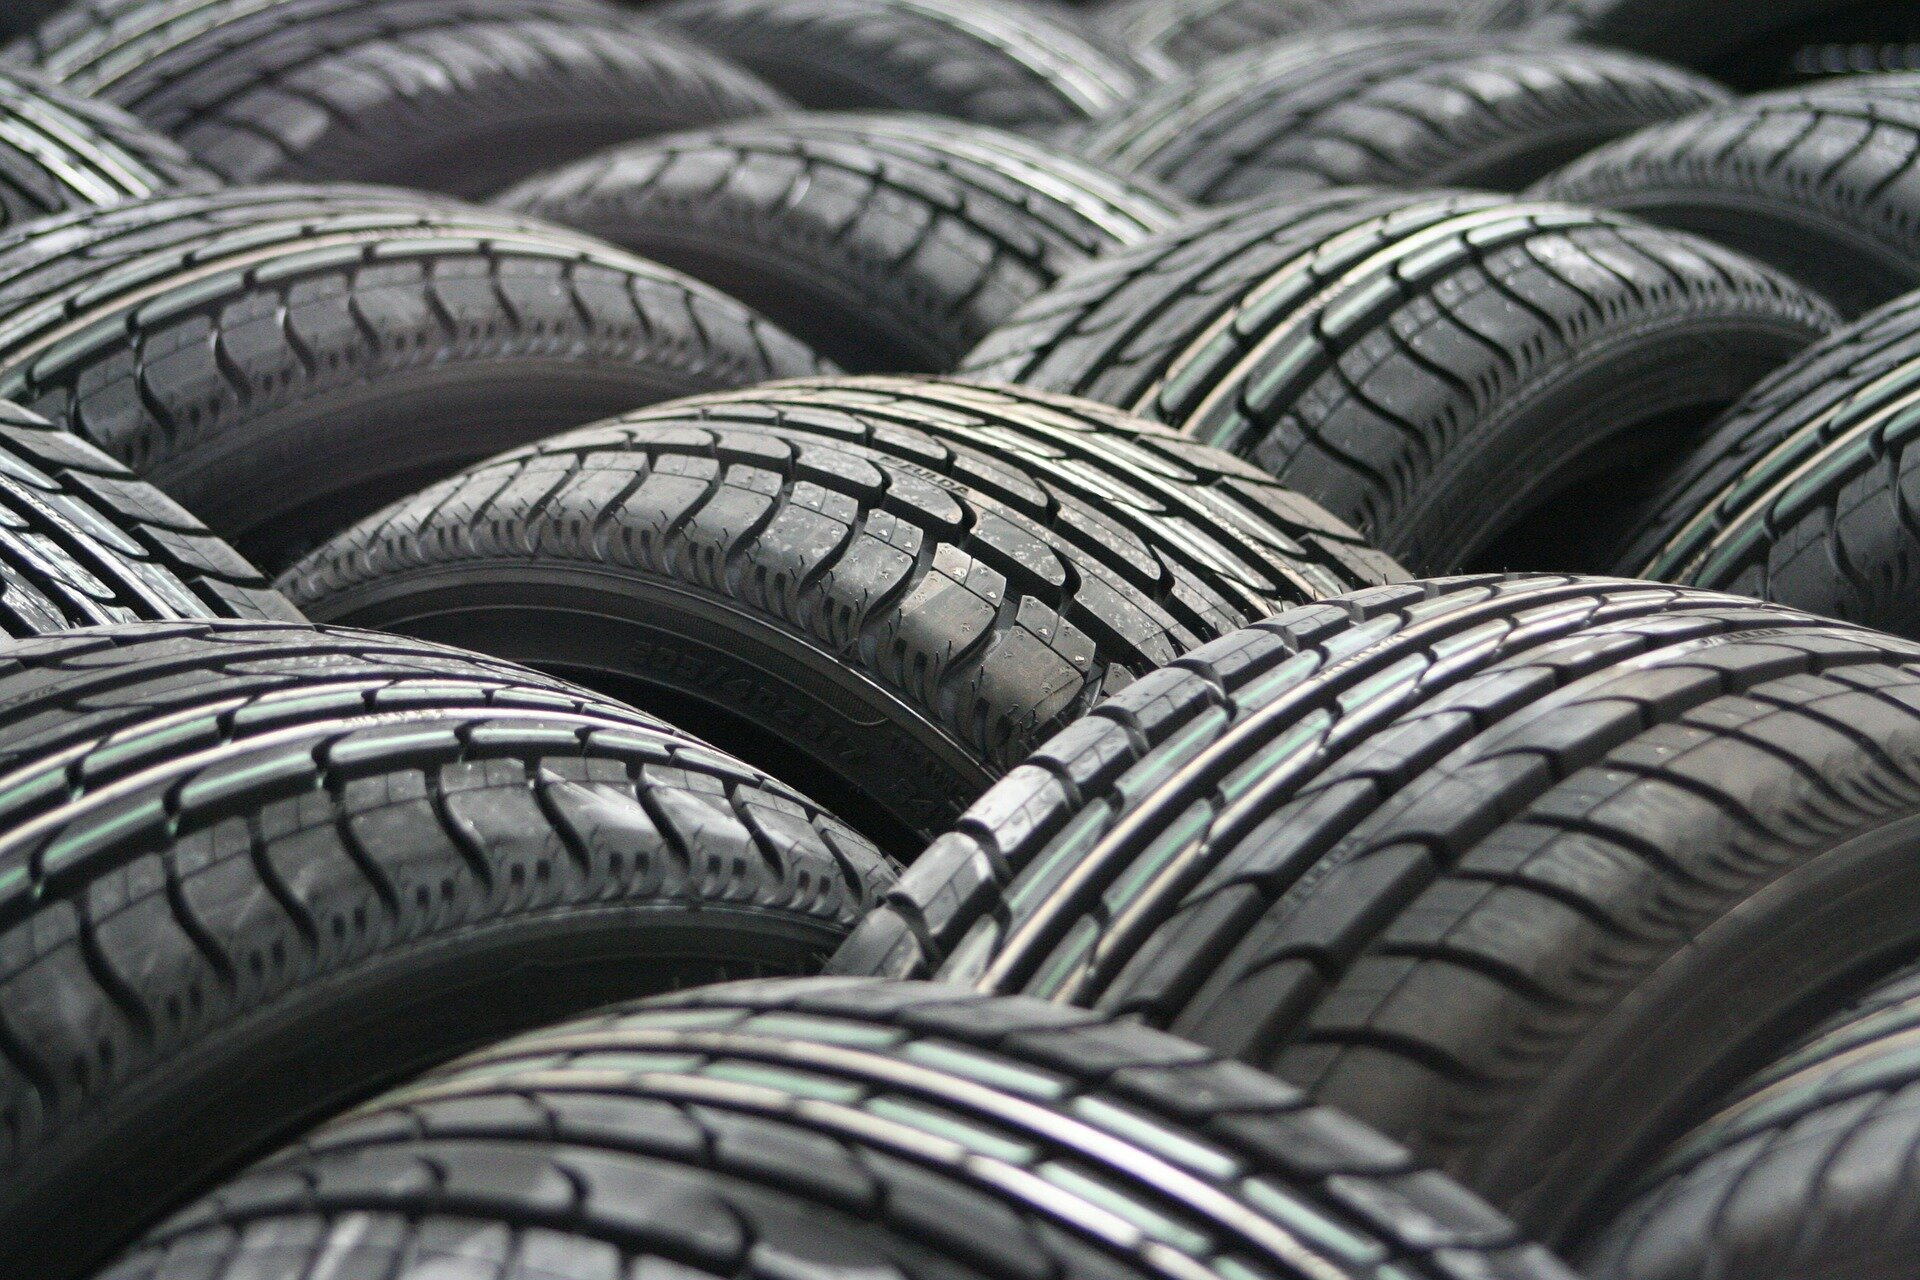 Study reveals substantial quantities of tyre particles contaminating rivers and ocean